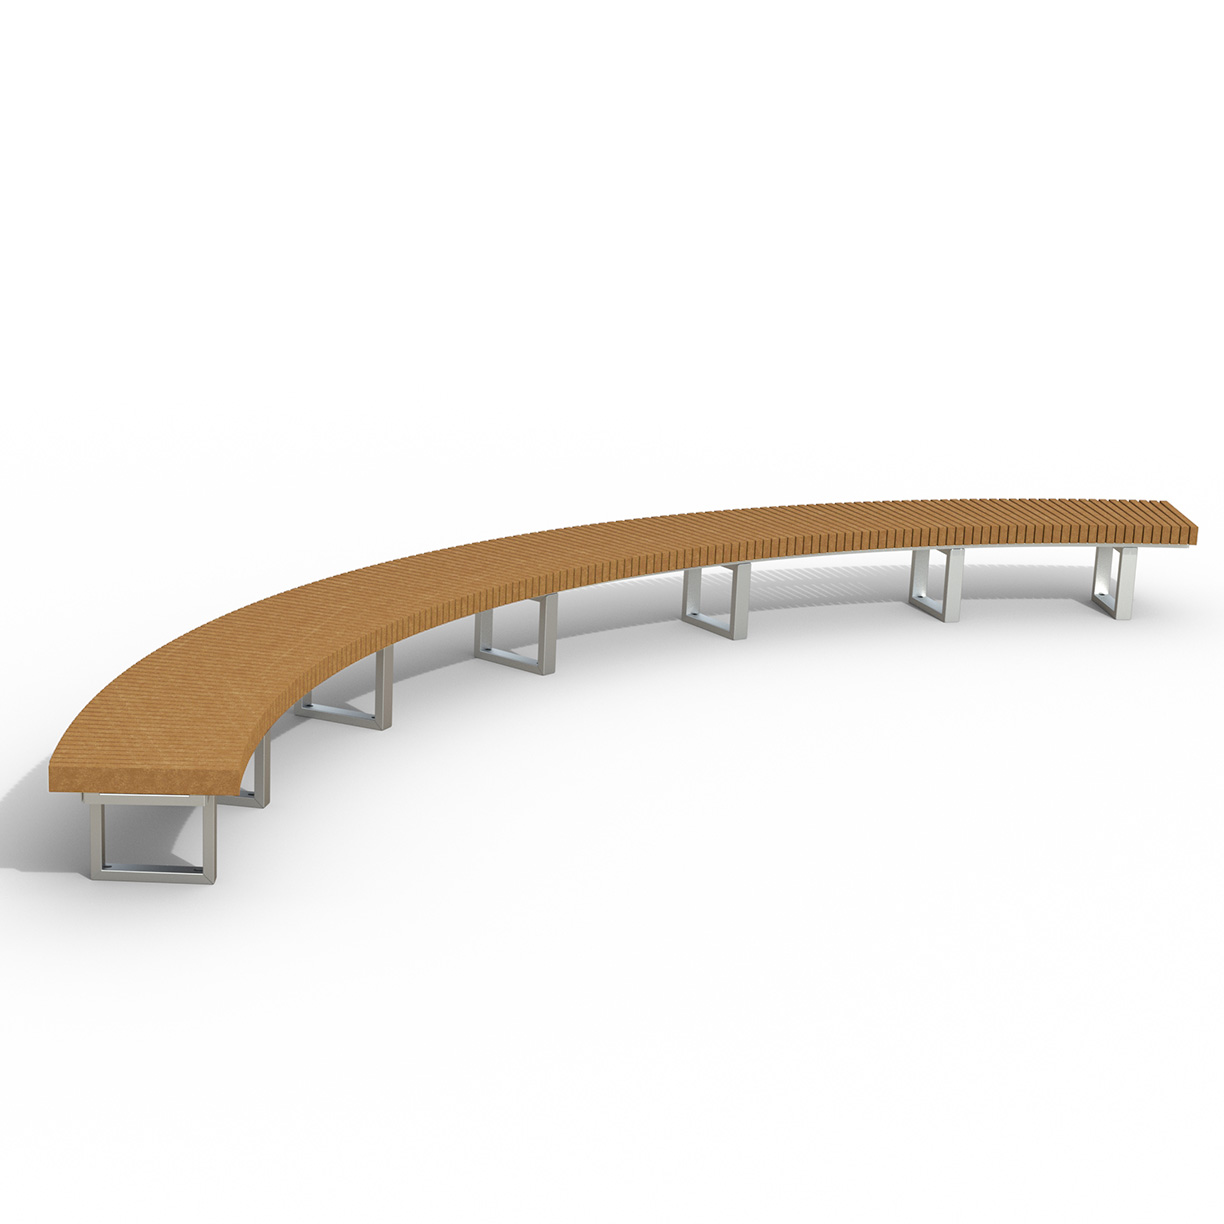 INF24C1690R  Infinity Collection 16' Radius / 90 Degree Curved Recycled Plastic Bench